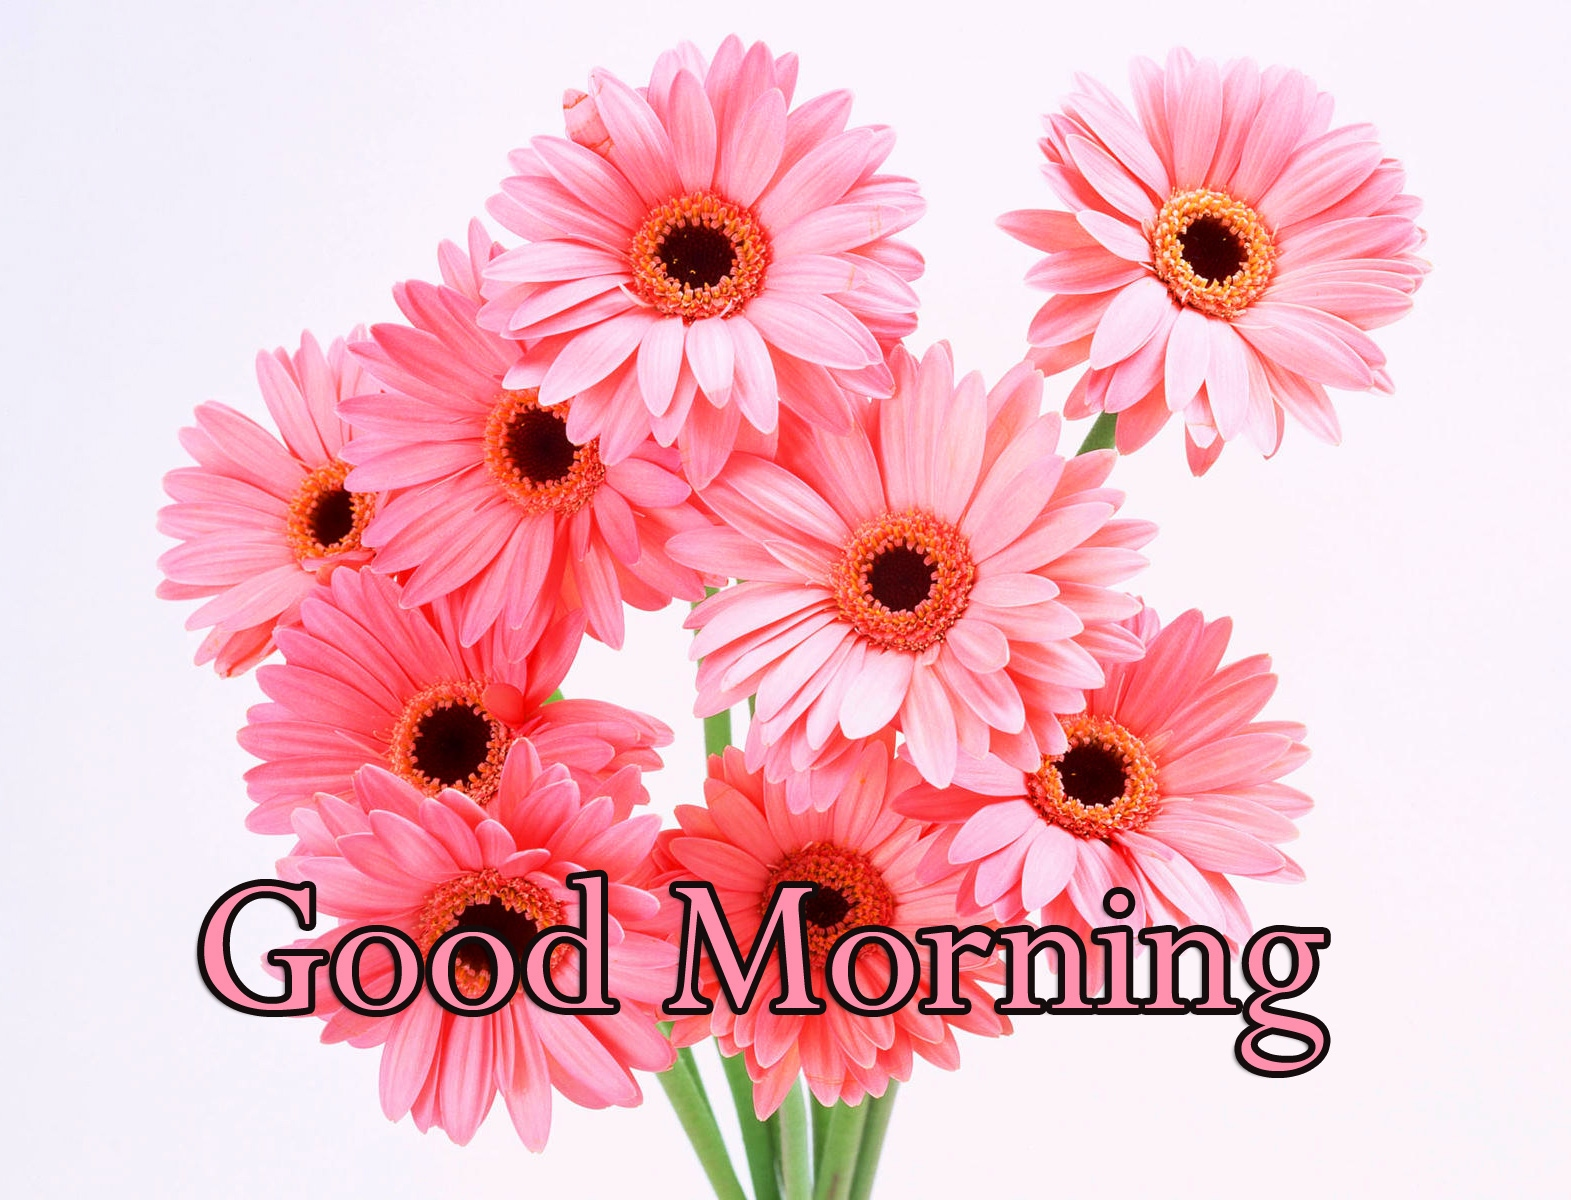 Good Morning Wallpaper Pics Free New Download